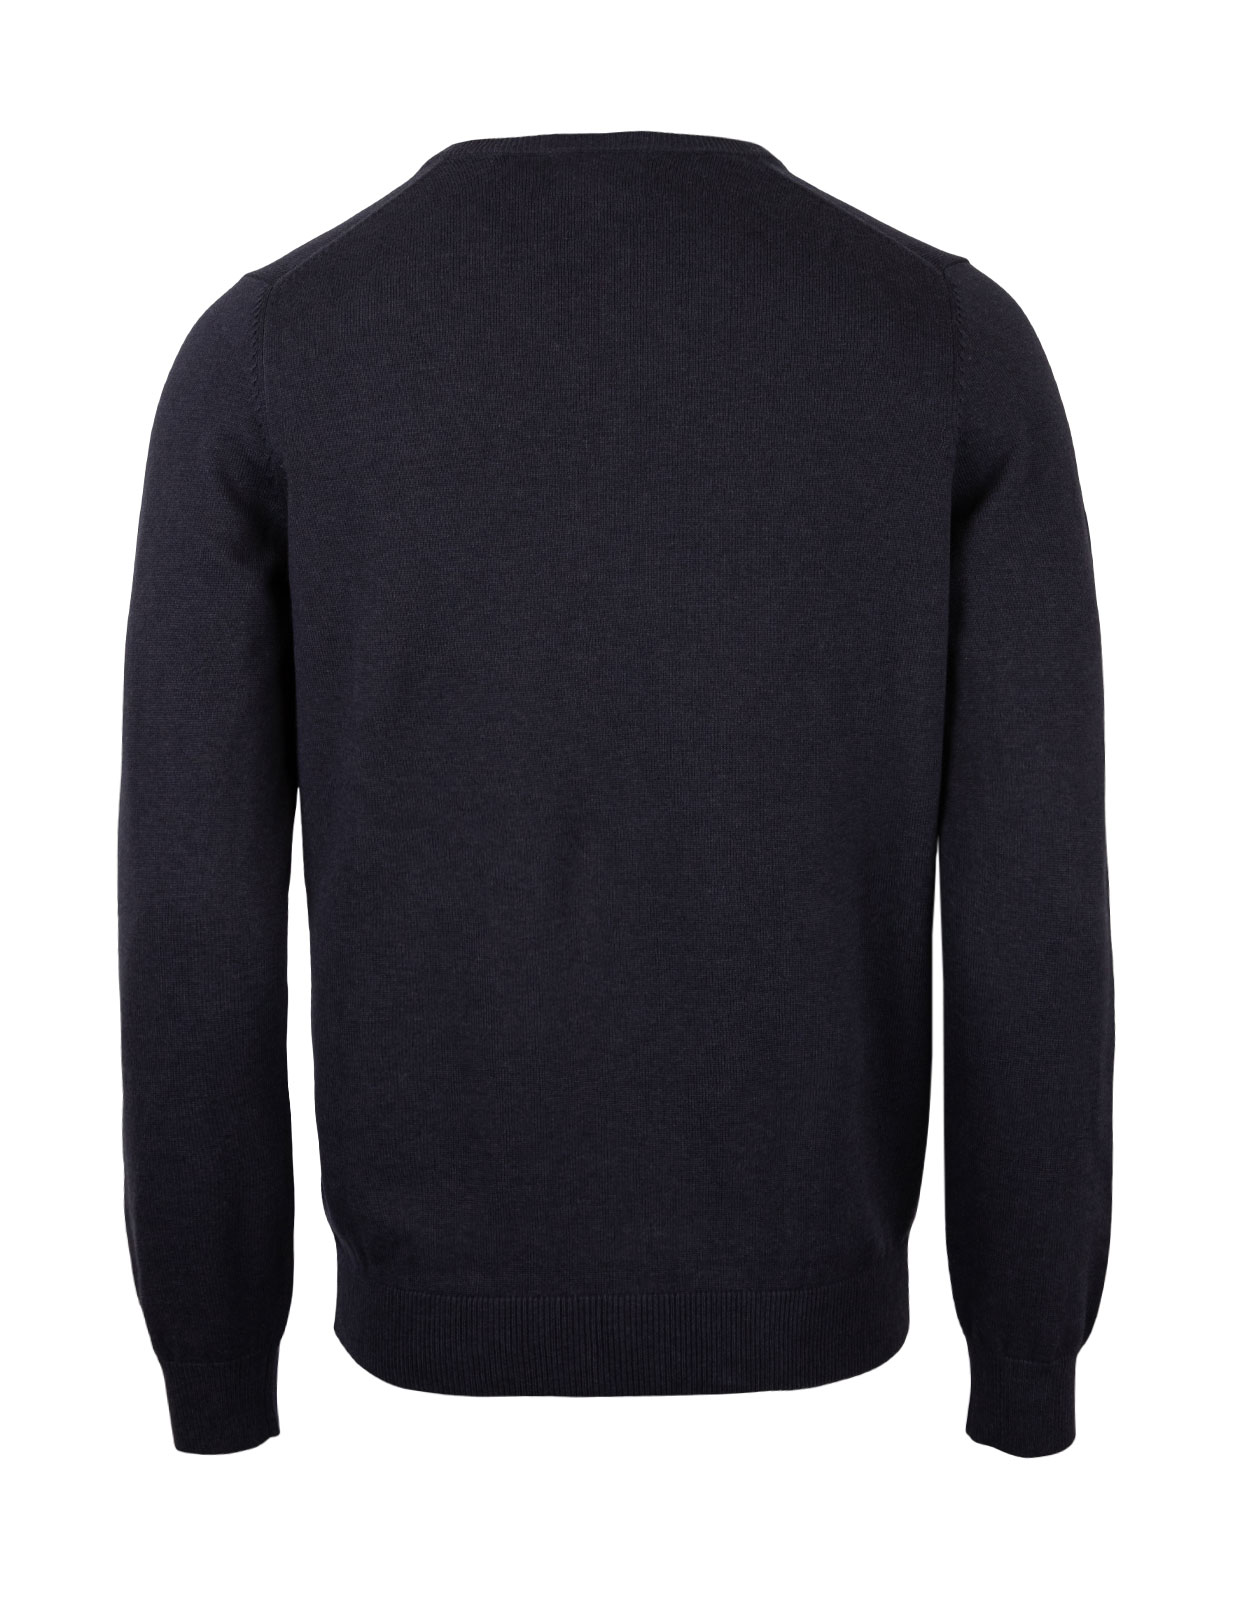 Rothwell Vee Neck Cotton Cashmere Dark Navy